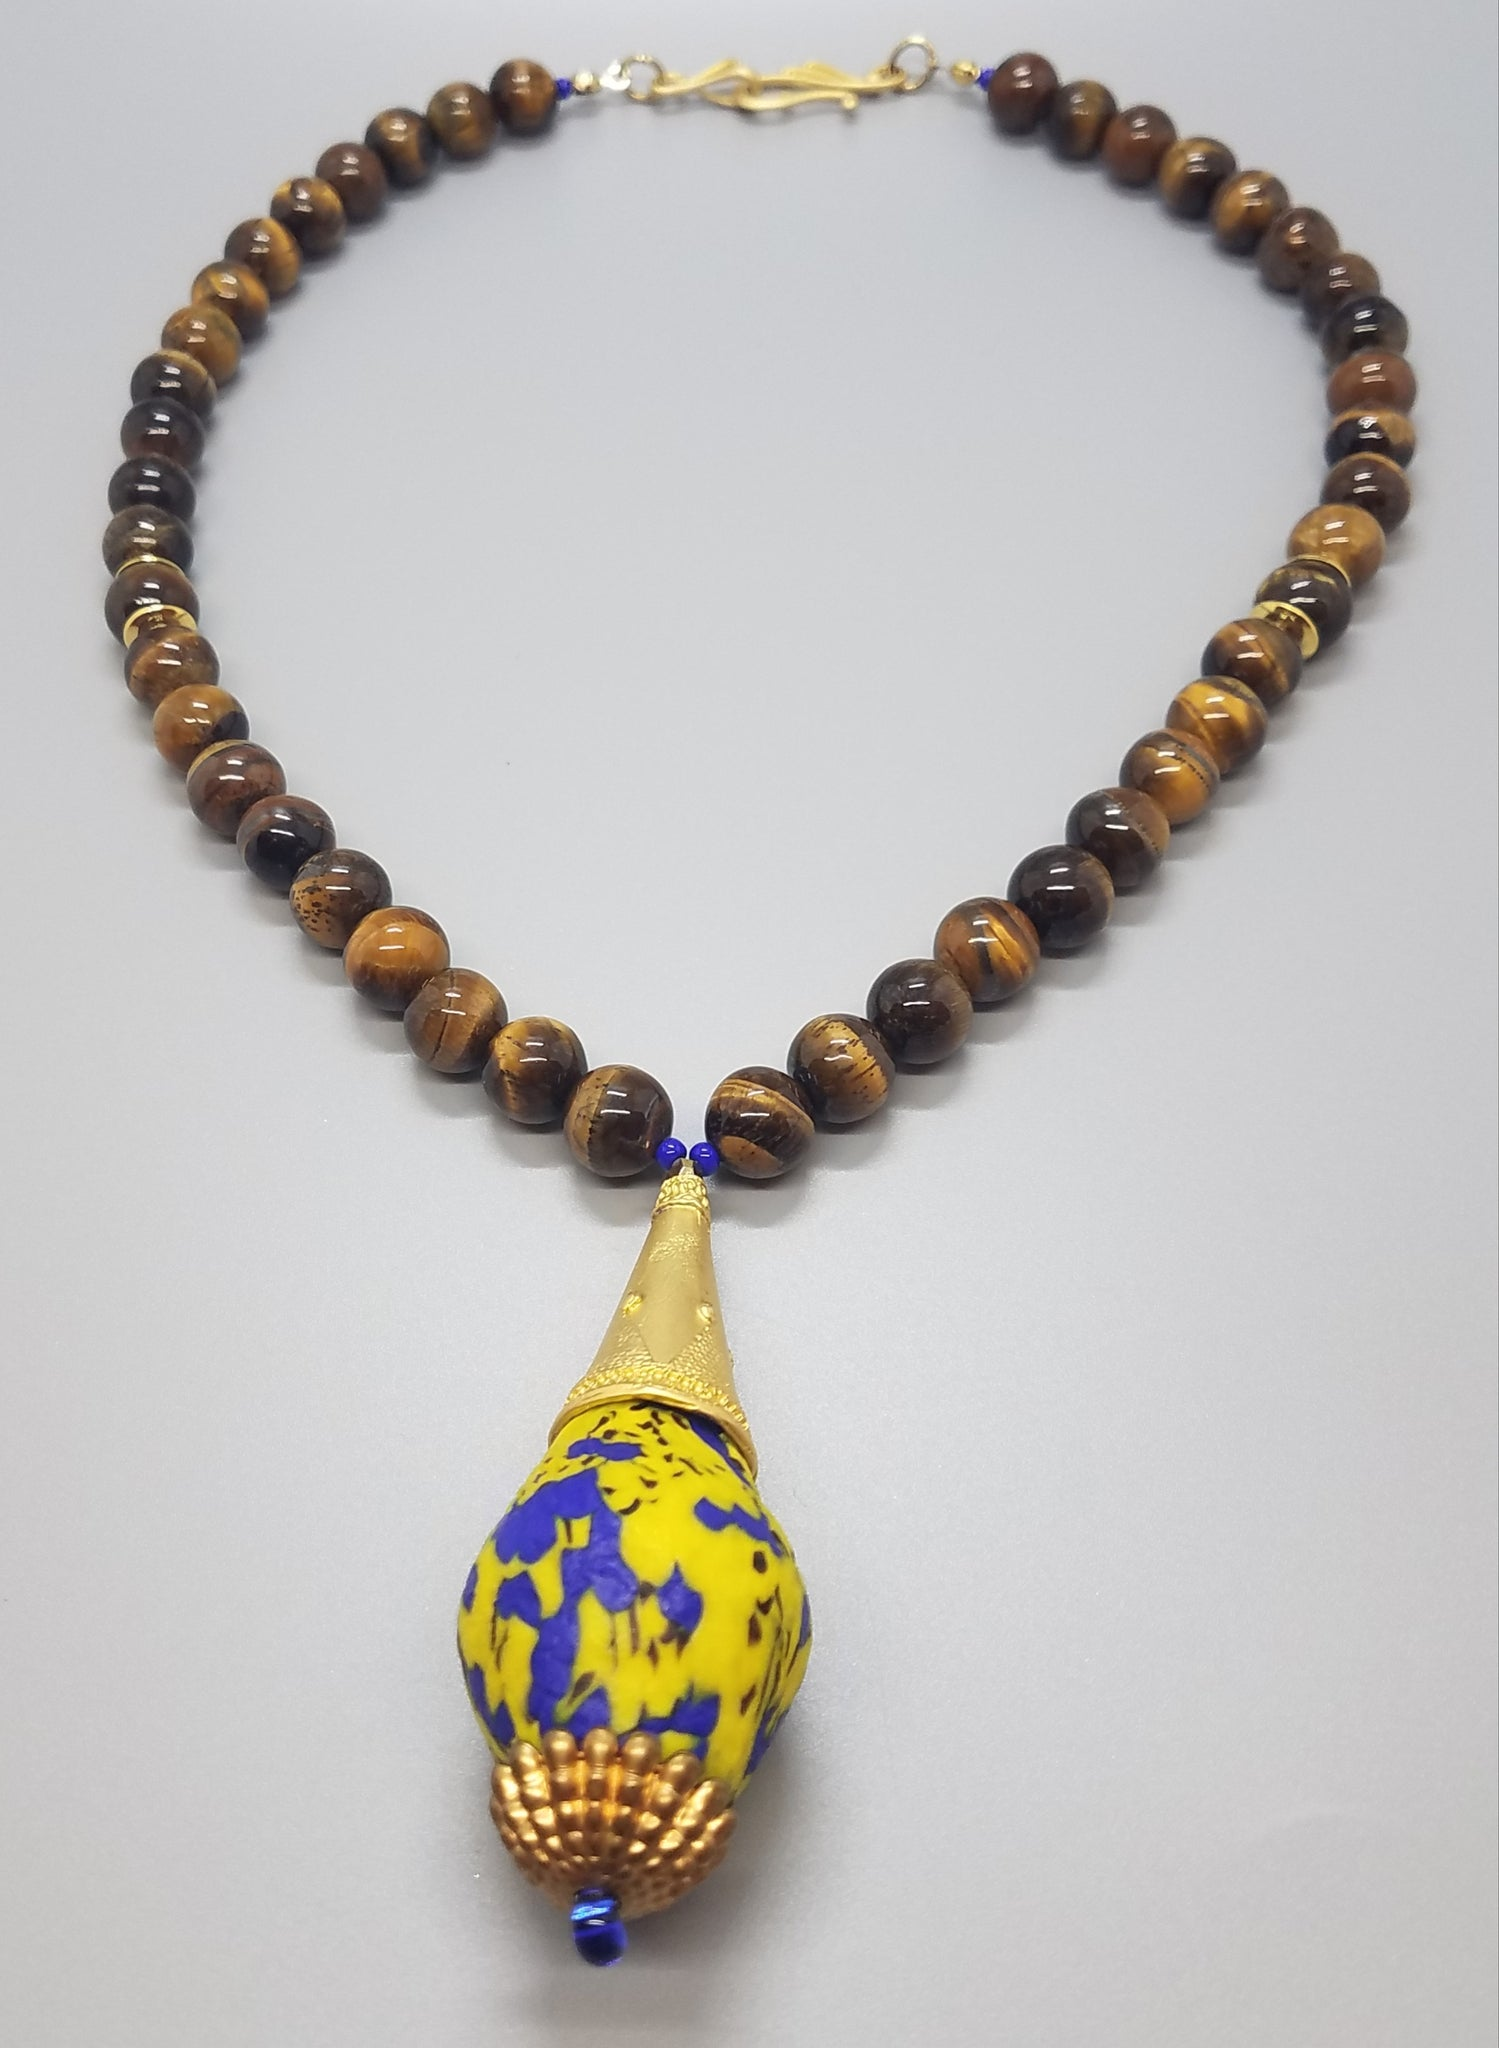 Blue Yellow Mult Krobo Beads, Tiger Eye Beads, Brass, Stamping and 22K Gold Plated Brass, Necklace